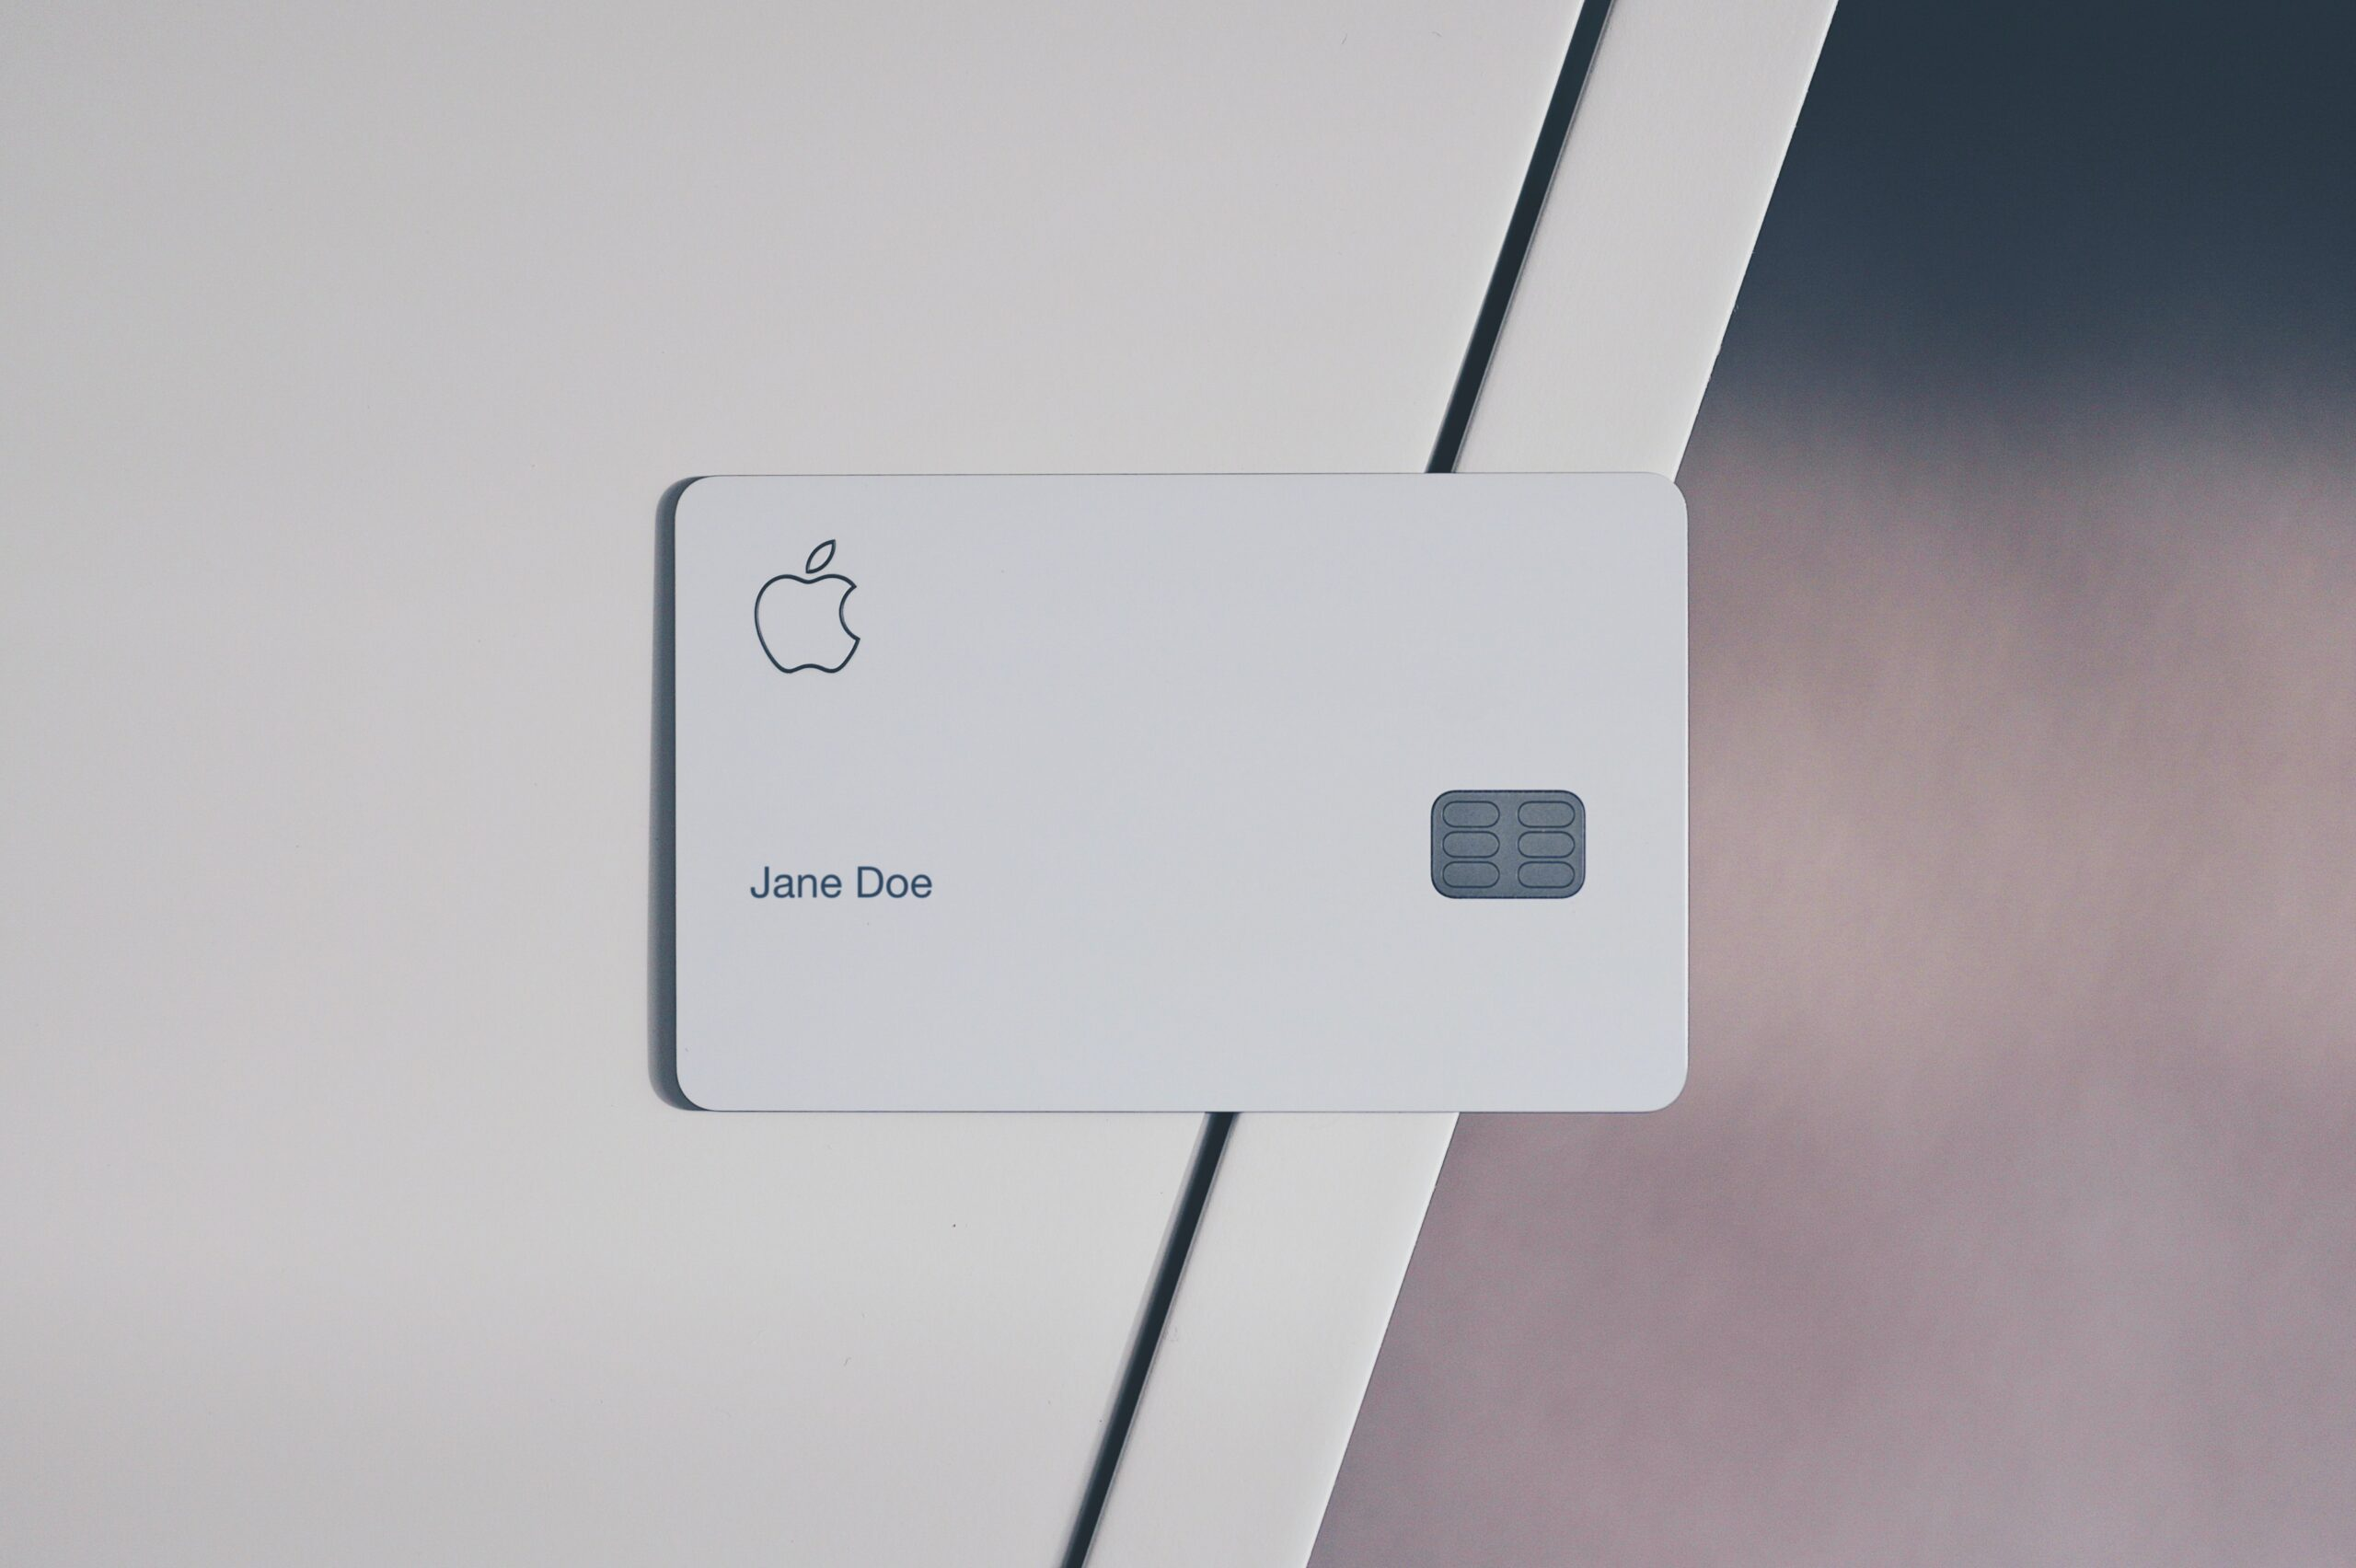 Apple Card